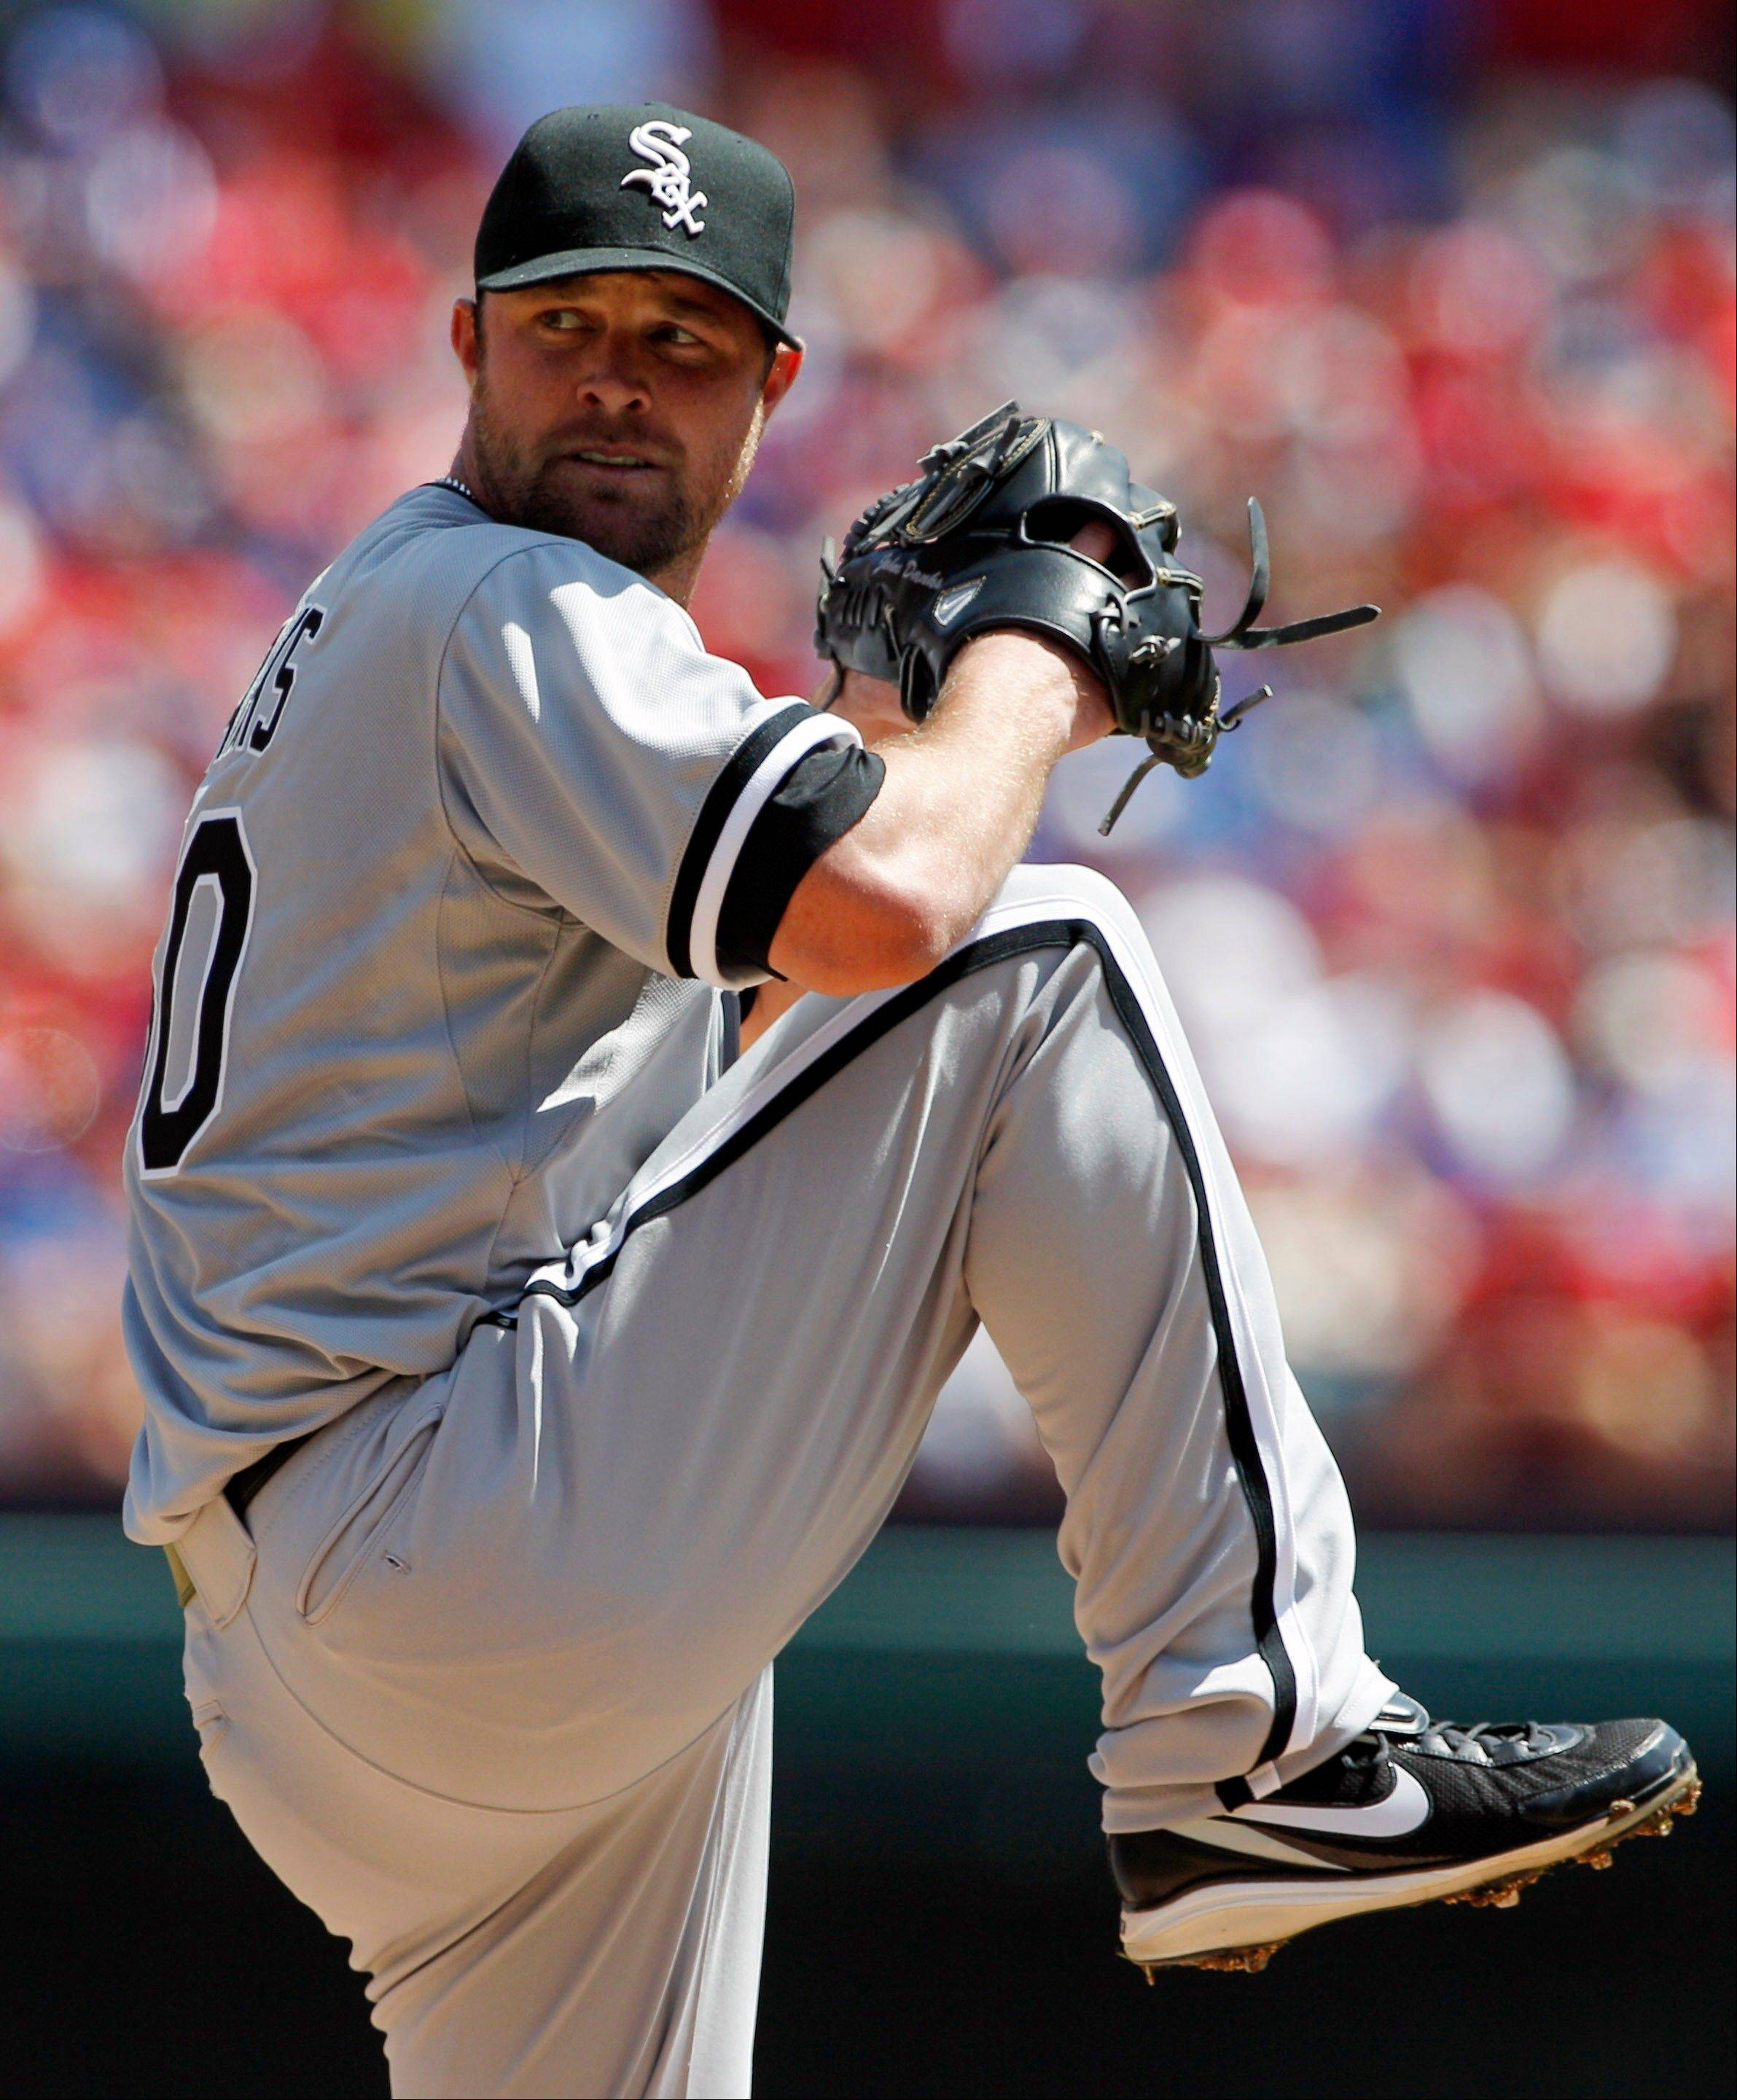 Chicago White Sox starting pitcher John Danks delivers the ball against the Texas Rangers during the first inning of a baseball game Friday, April 6, 2012 in Arlington, Texas.